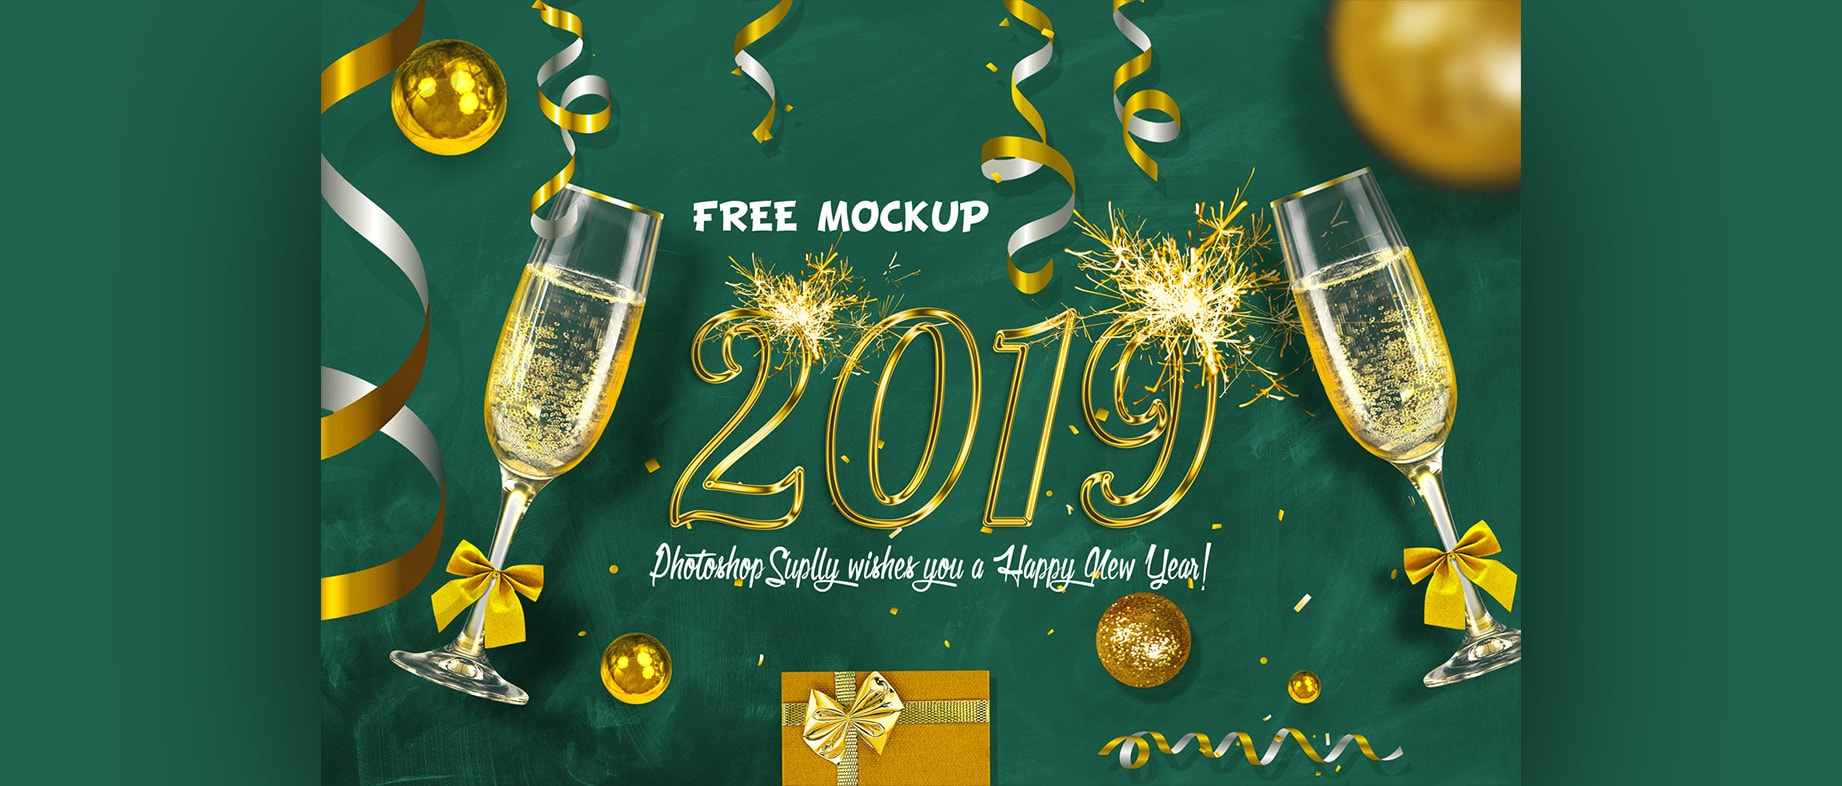 New Year Eve Free Scene Mockup